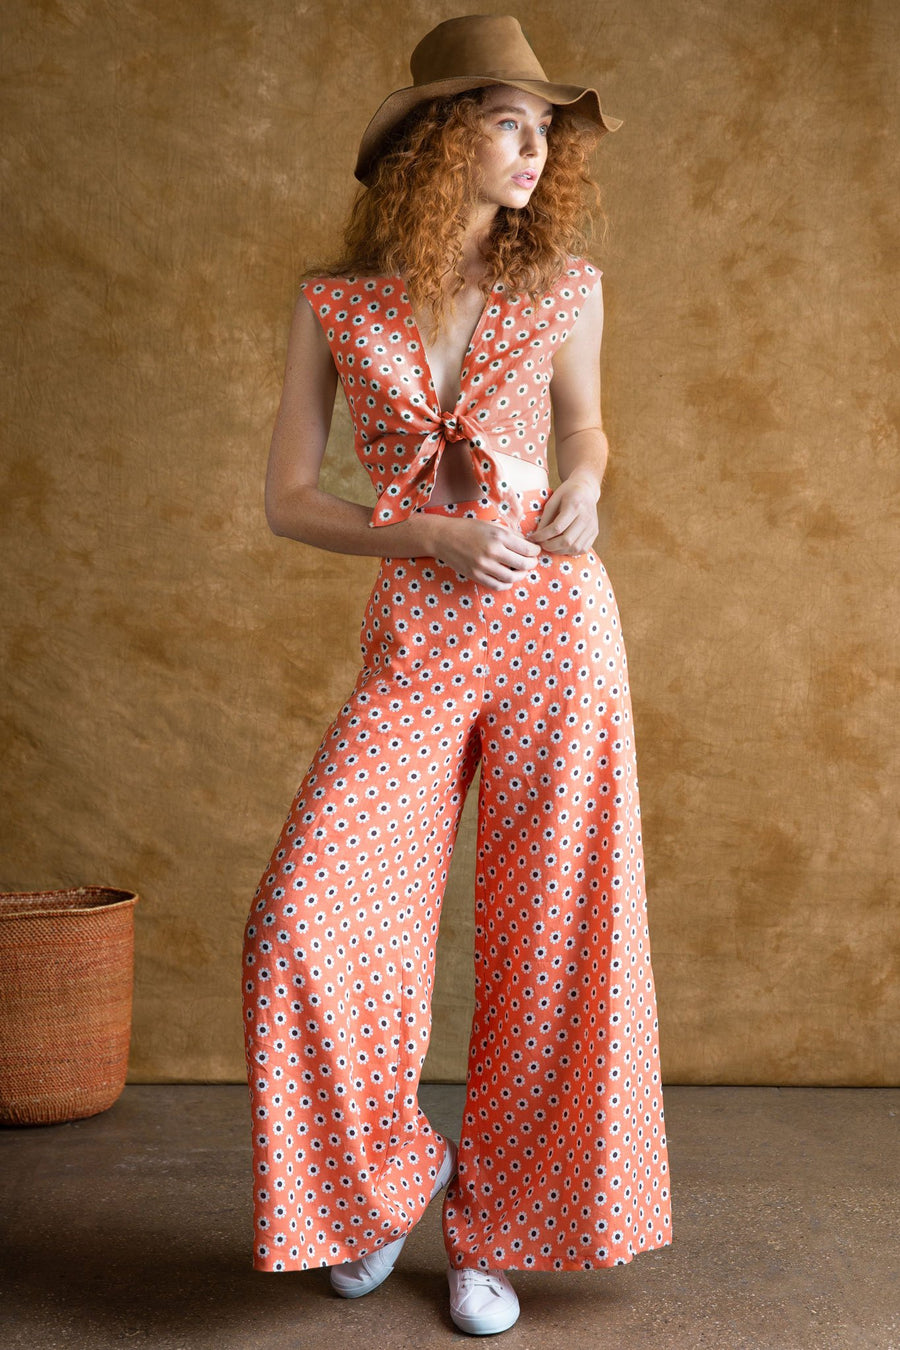 This is a photo of a woman wearing a two piece linen set with deep v neck tied crop top paired with high waisted flare pants. The full outfit is in coral-colored daisy print. The models wears white sneakers and a brown safari hat.